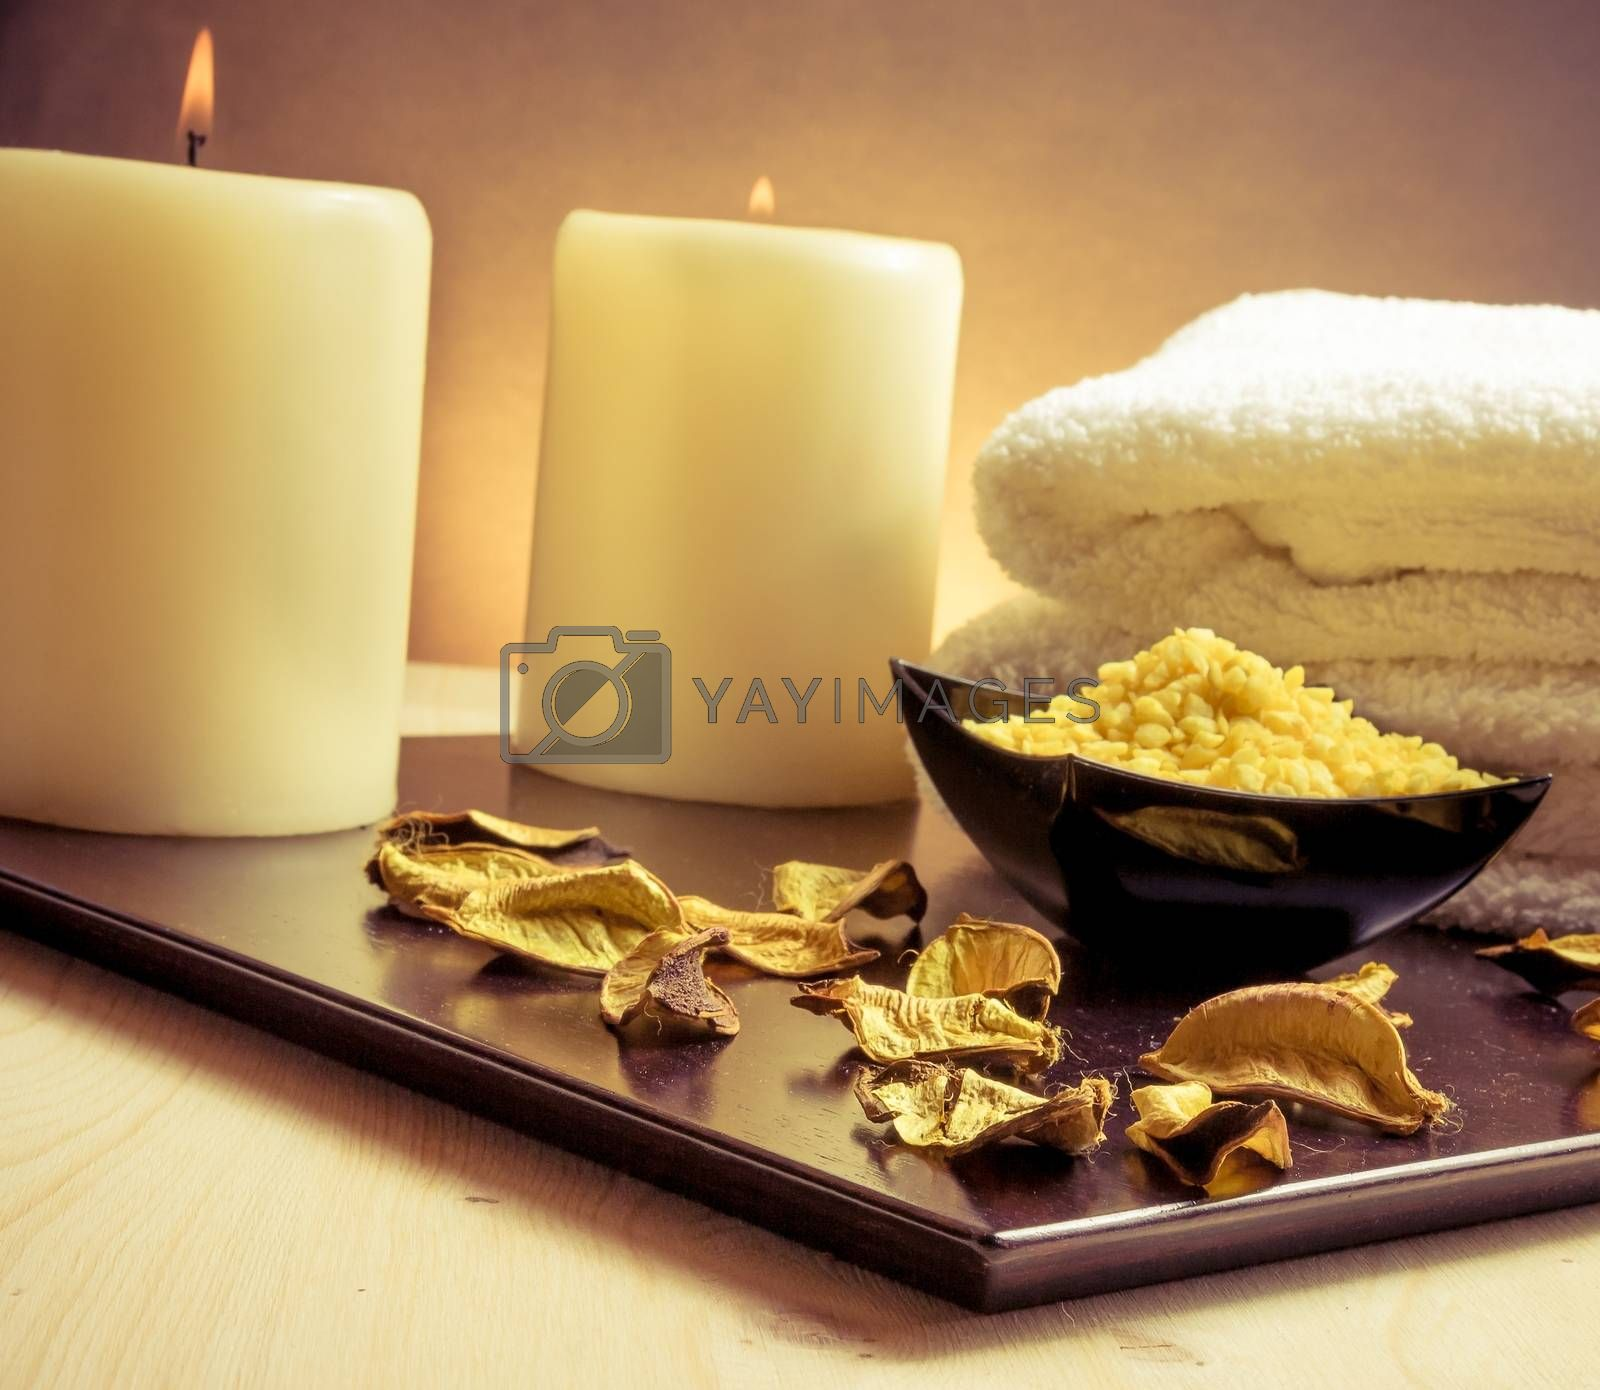 Spa massage border background with towel stacked, perfumed leaves, candle and sea salt by donfiore